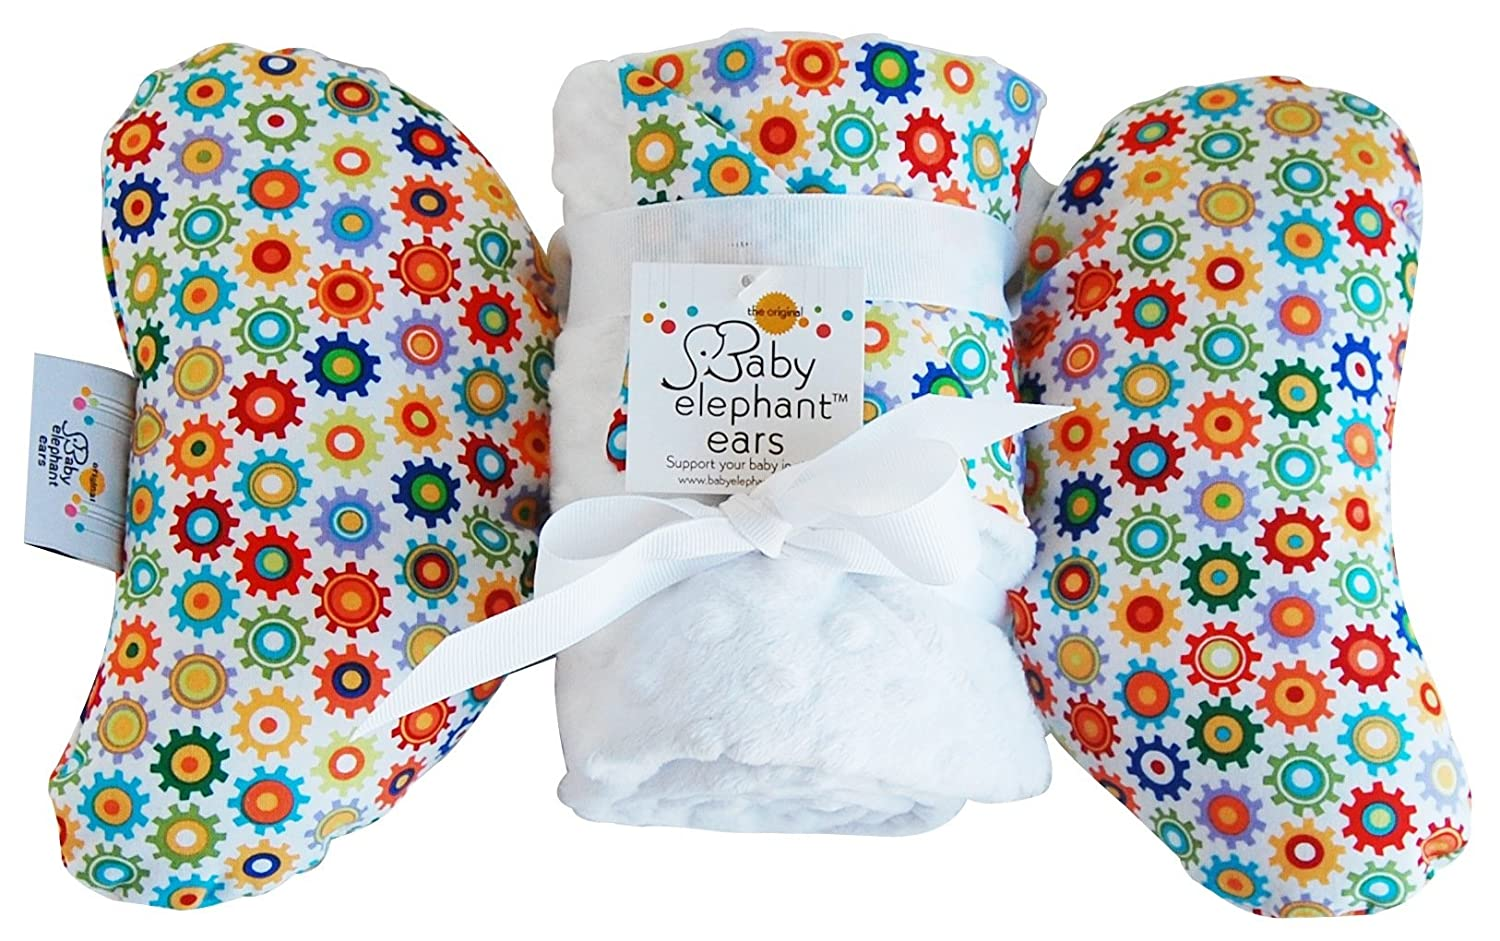 Baby Elephant Ears Head Support Pillow & Matching Blanket Gift Set (Sprockets)